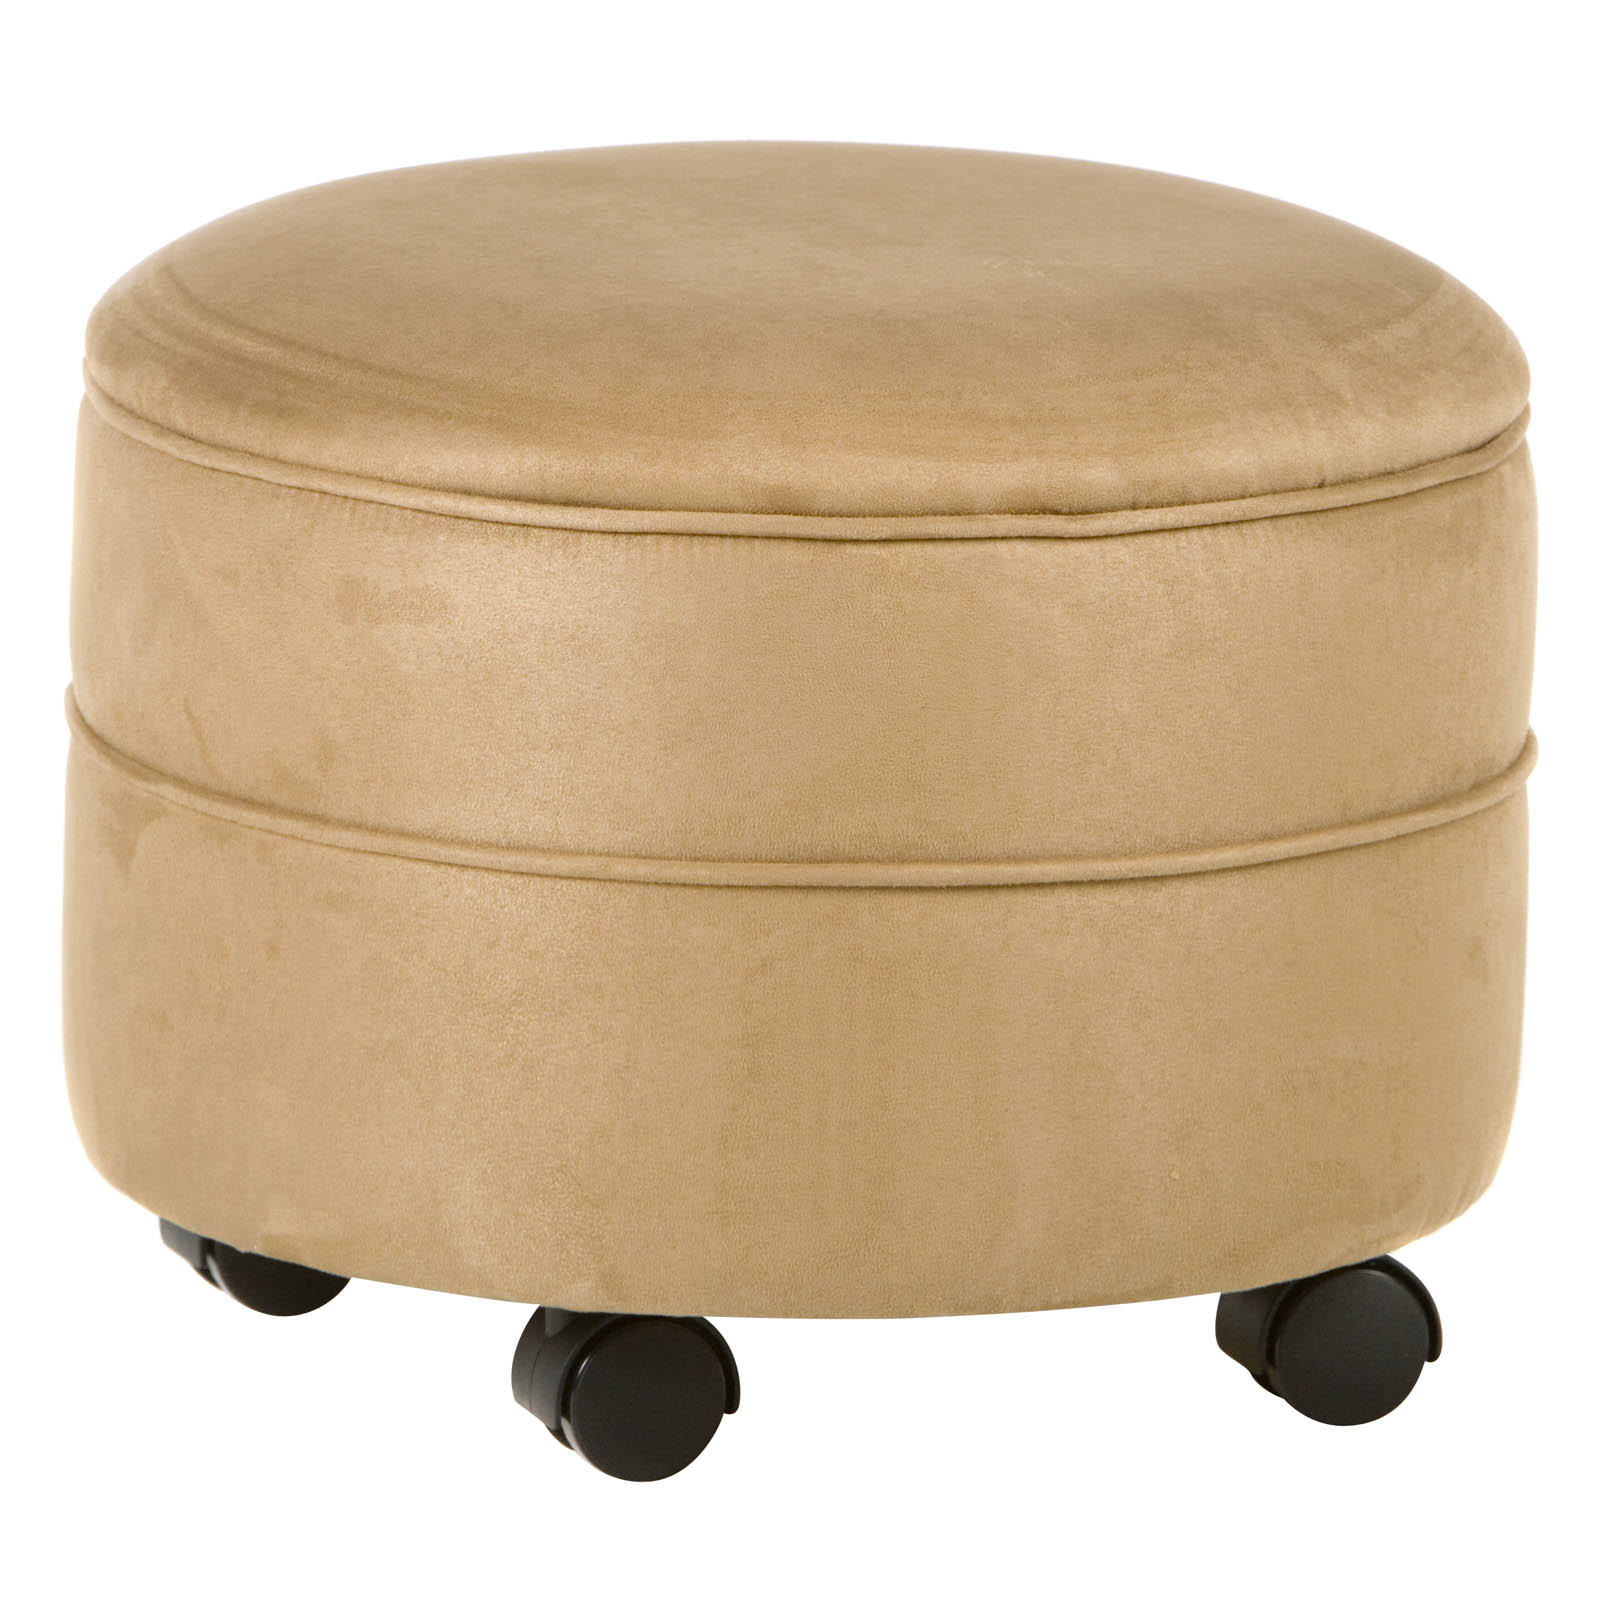 round suede storage ottoman at hayneedle. Black Bedroom Furniture Sets. Home Design Ideas